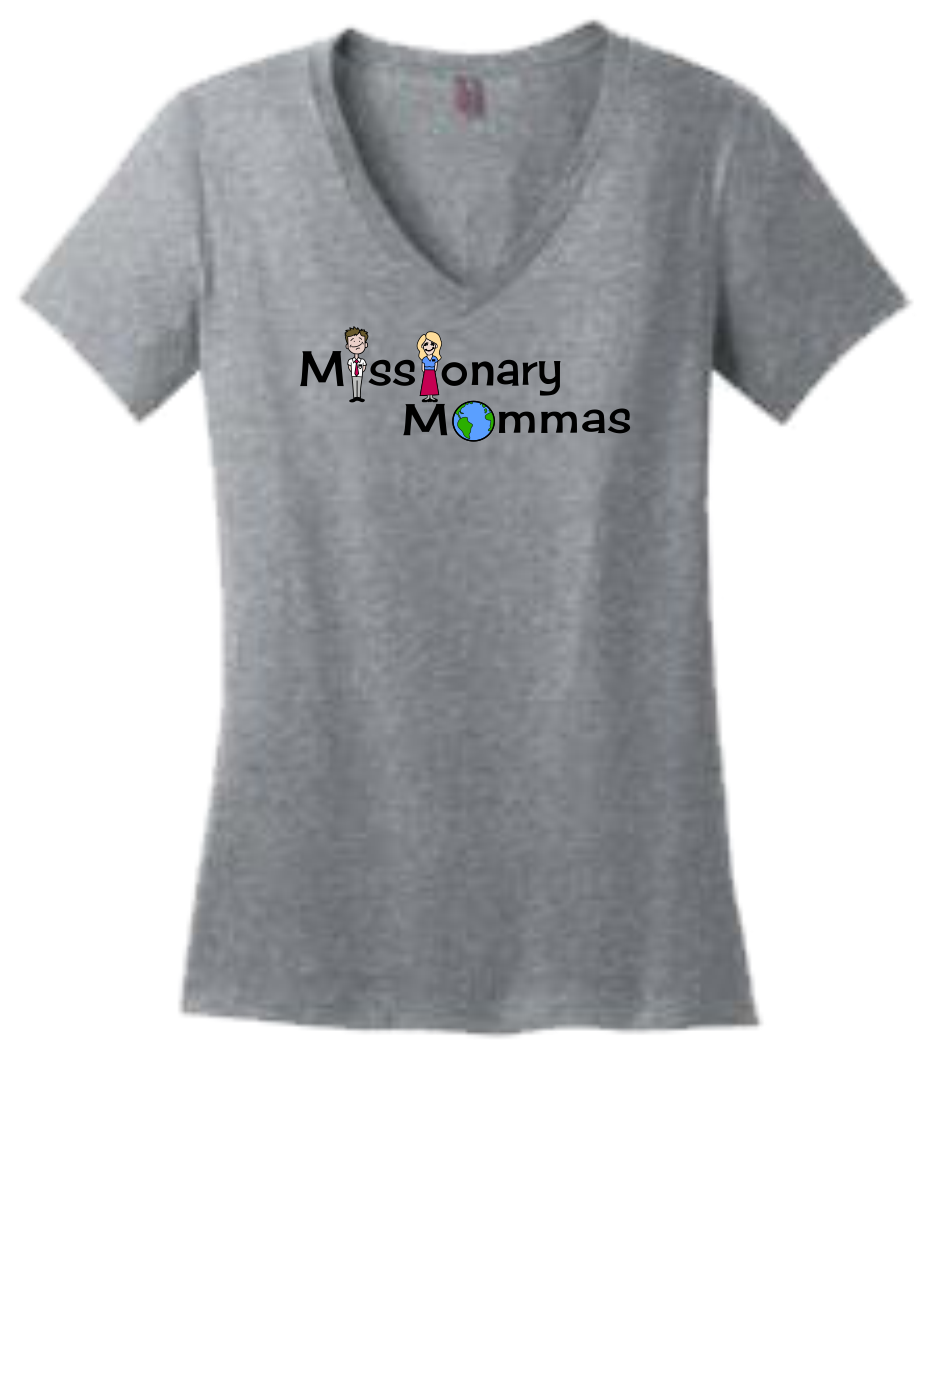 http://missionarymommamall.com/collections/missionary-mommas